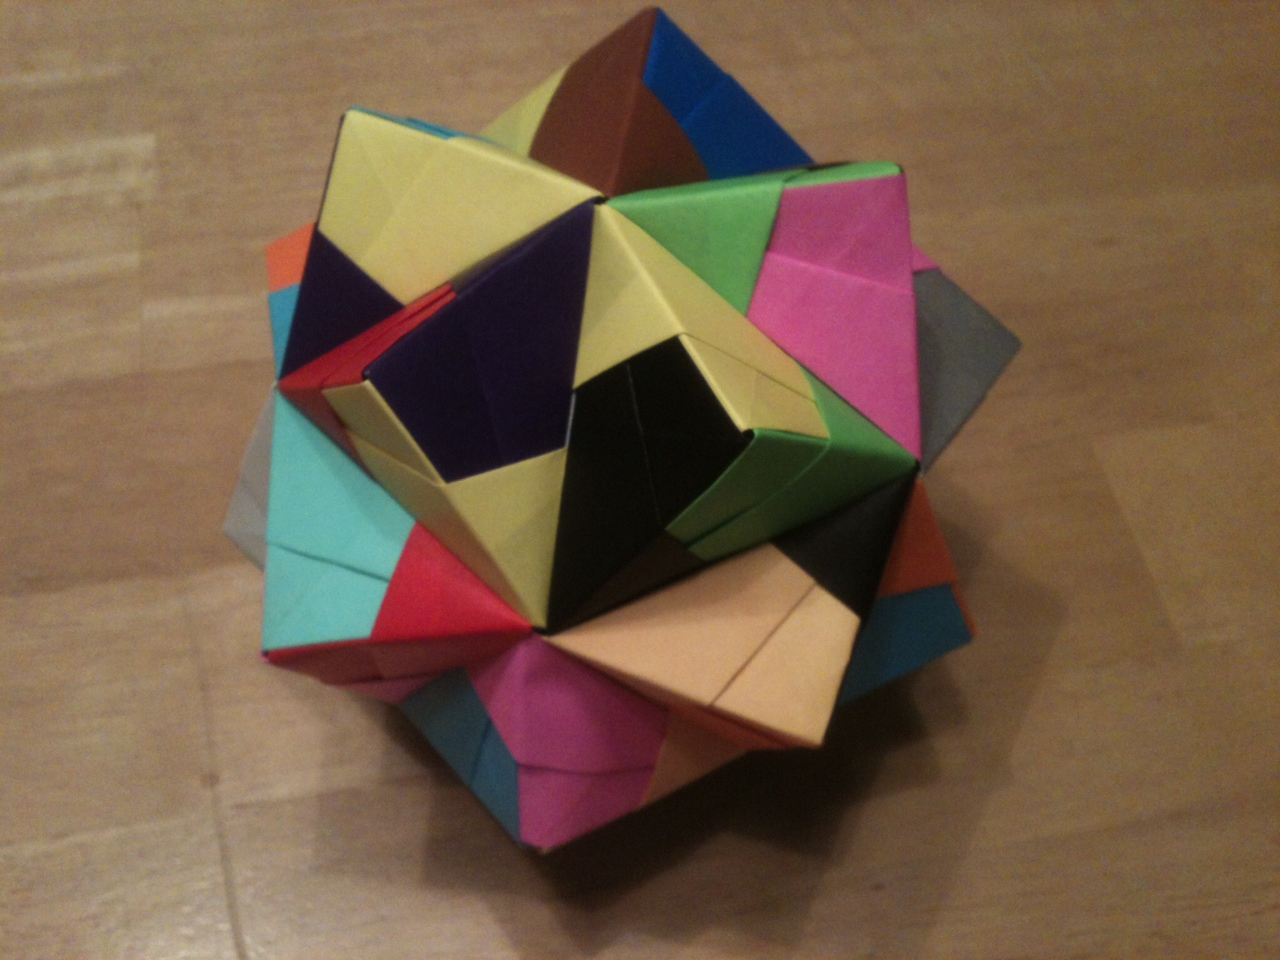 Icosahedron Origami The  quot icosahedron quot  means ifIcosahedron Origami